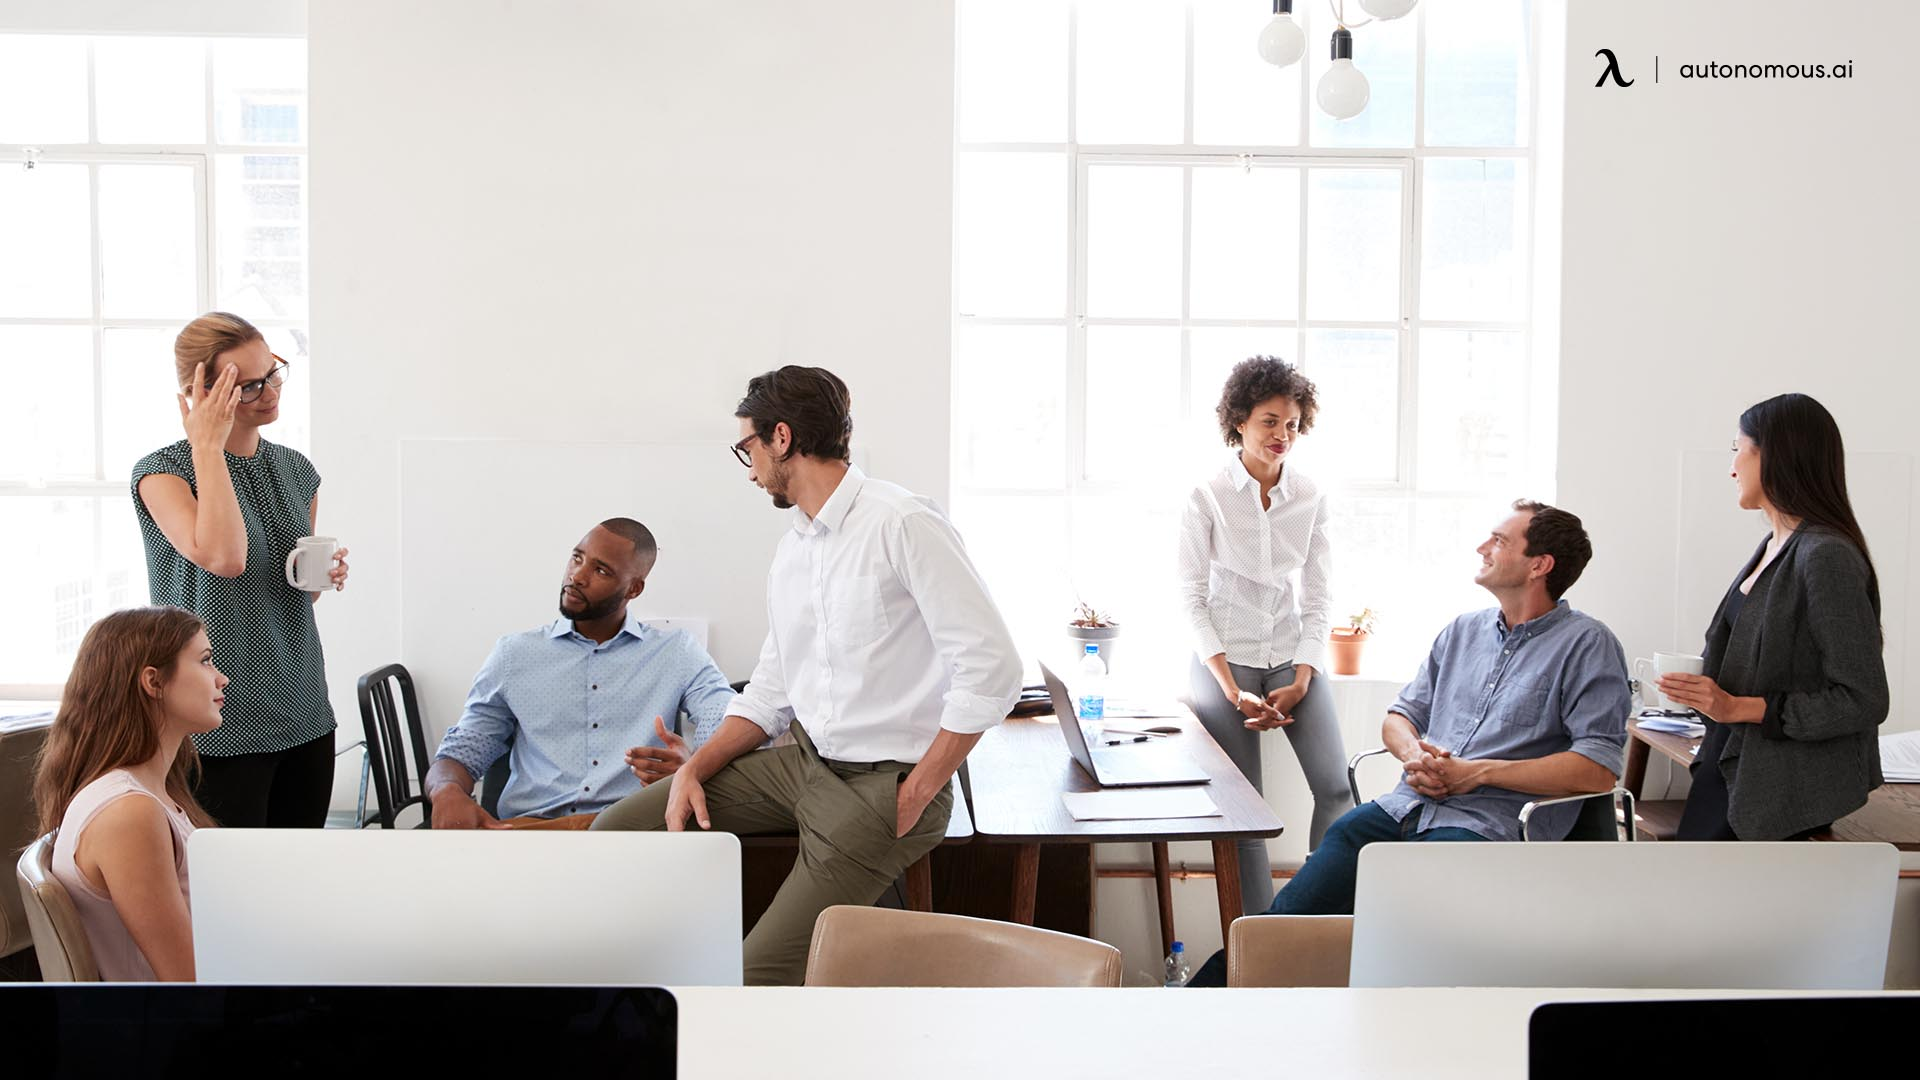 What do you mean by flexible workspace?